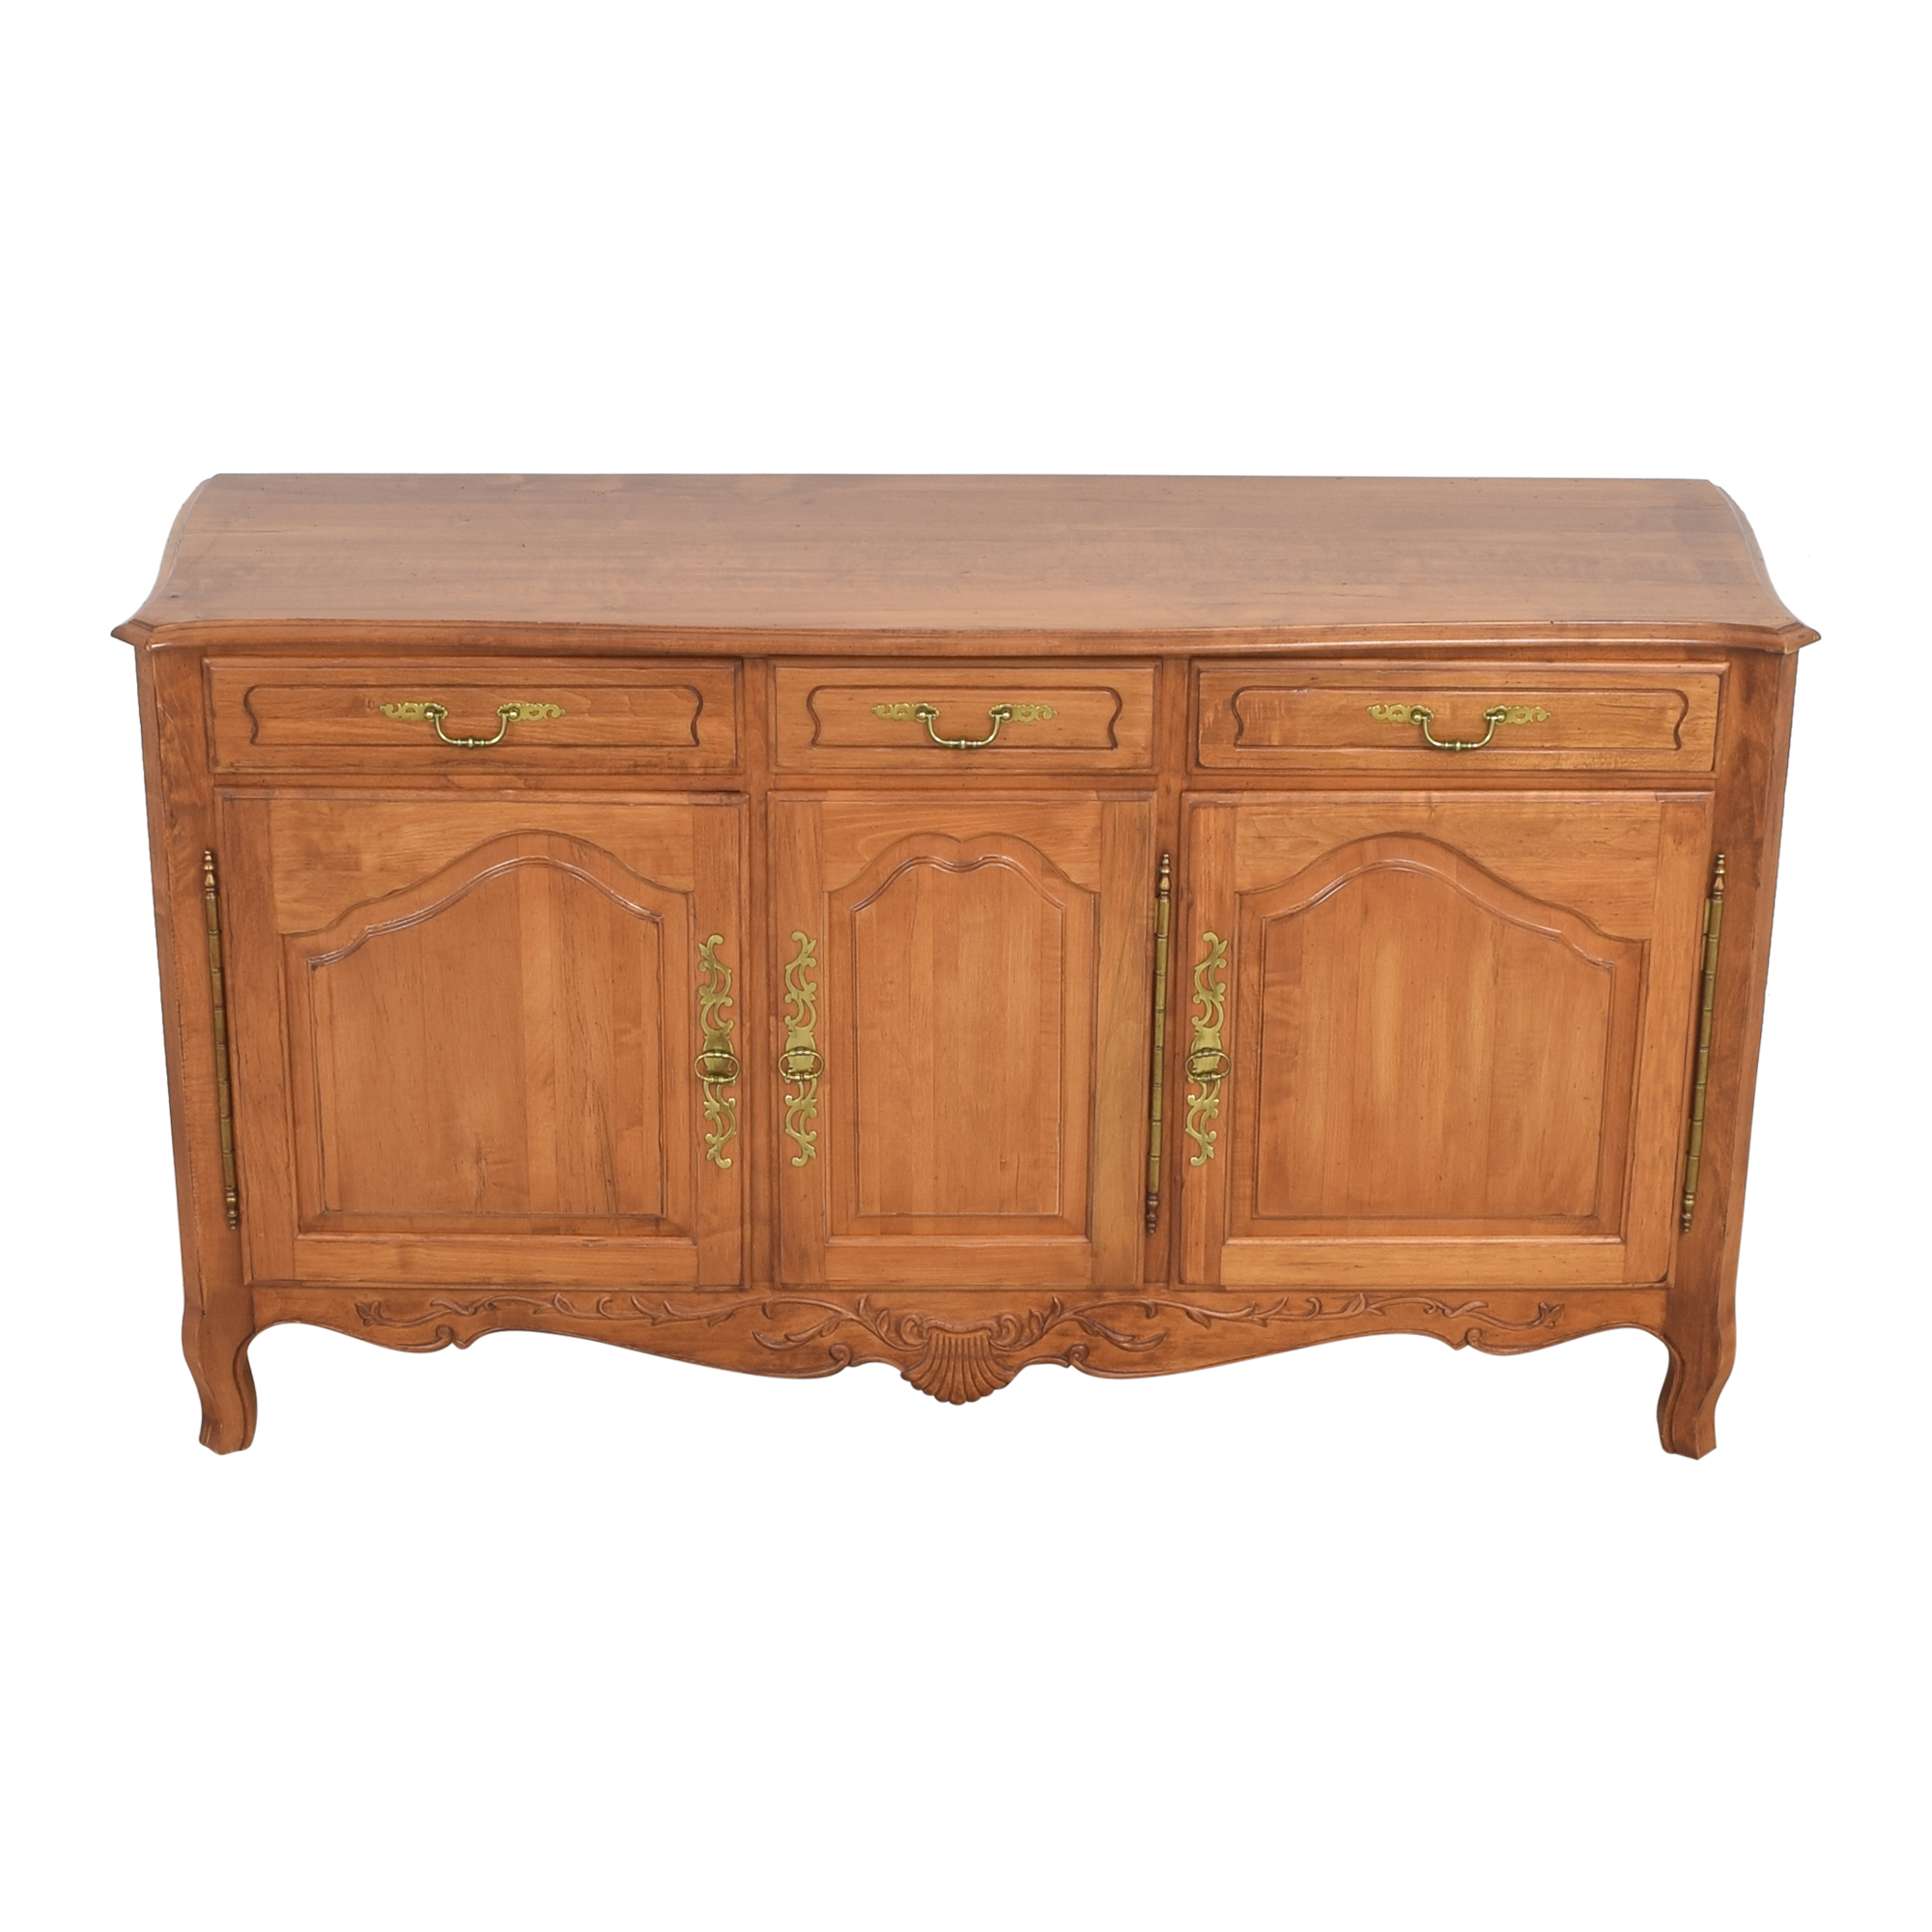 Ethan Allen Ethan Allen Legacy Collection Buffet used